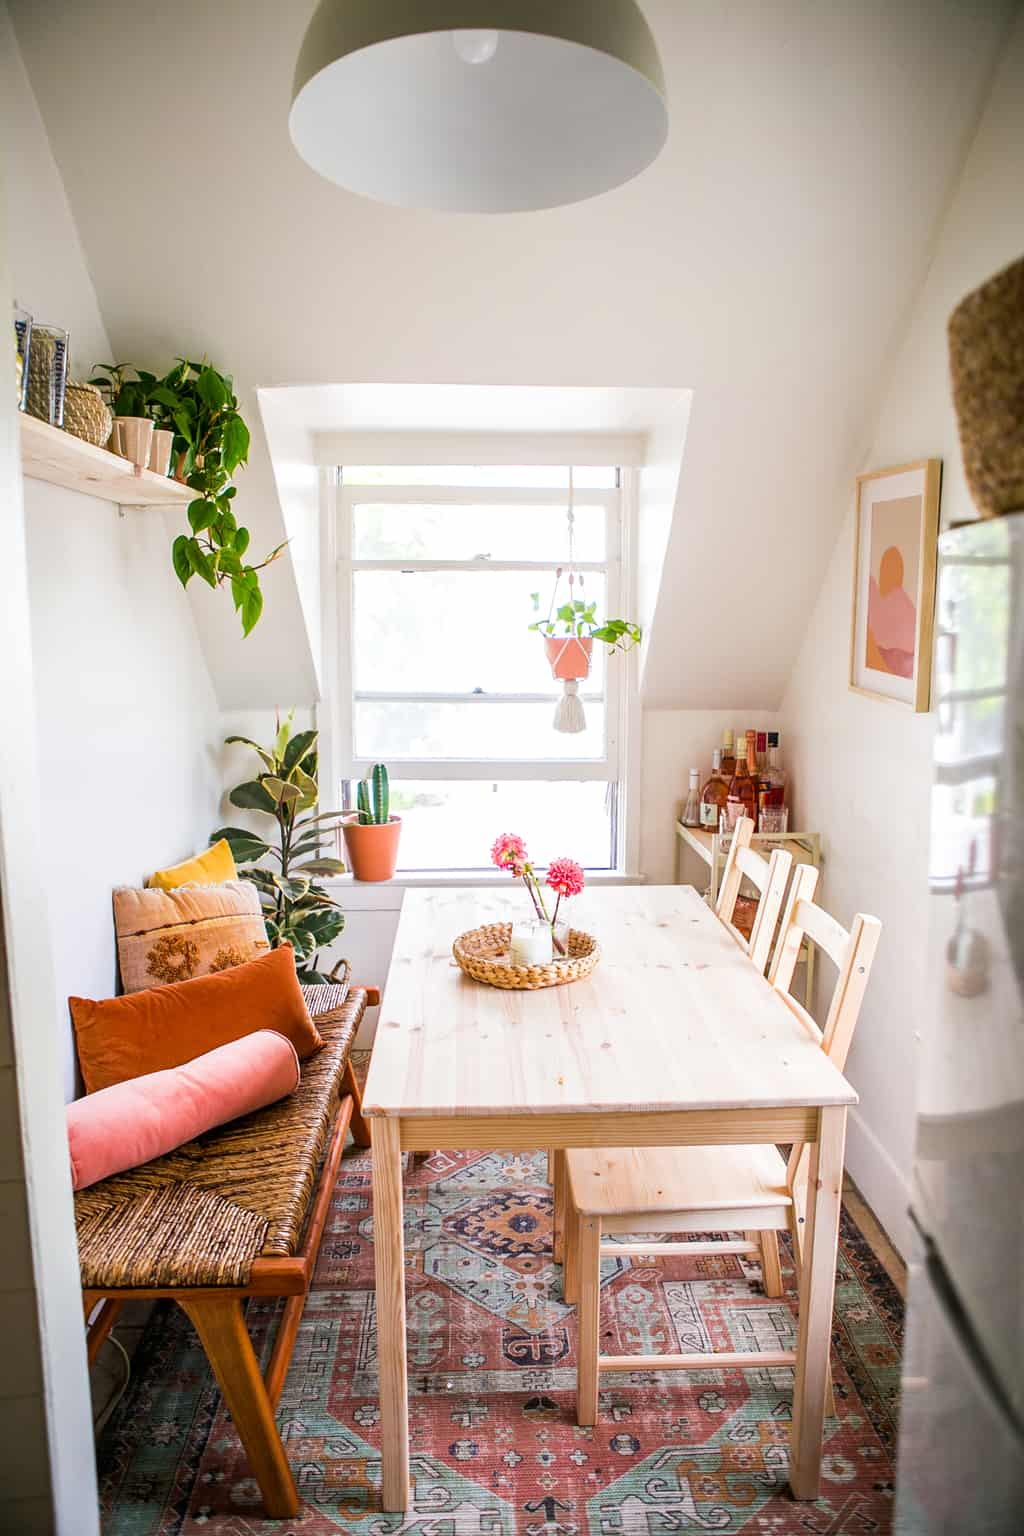 Small dinning room with a wooden table and bench with a rug and bar cart.